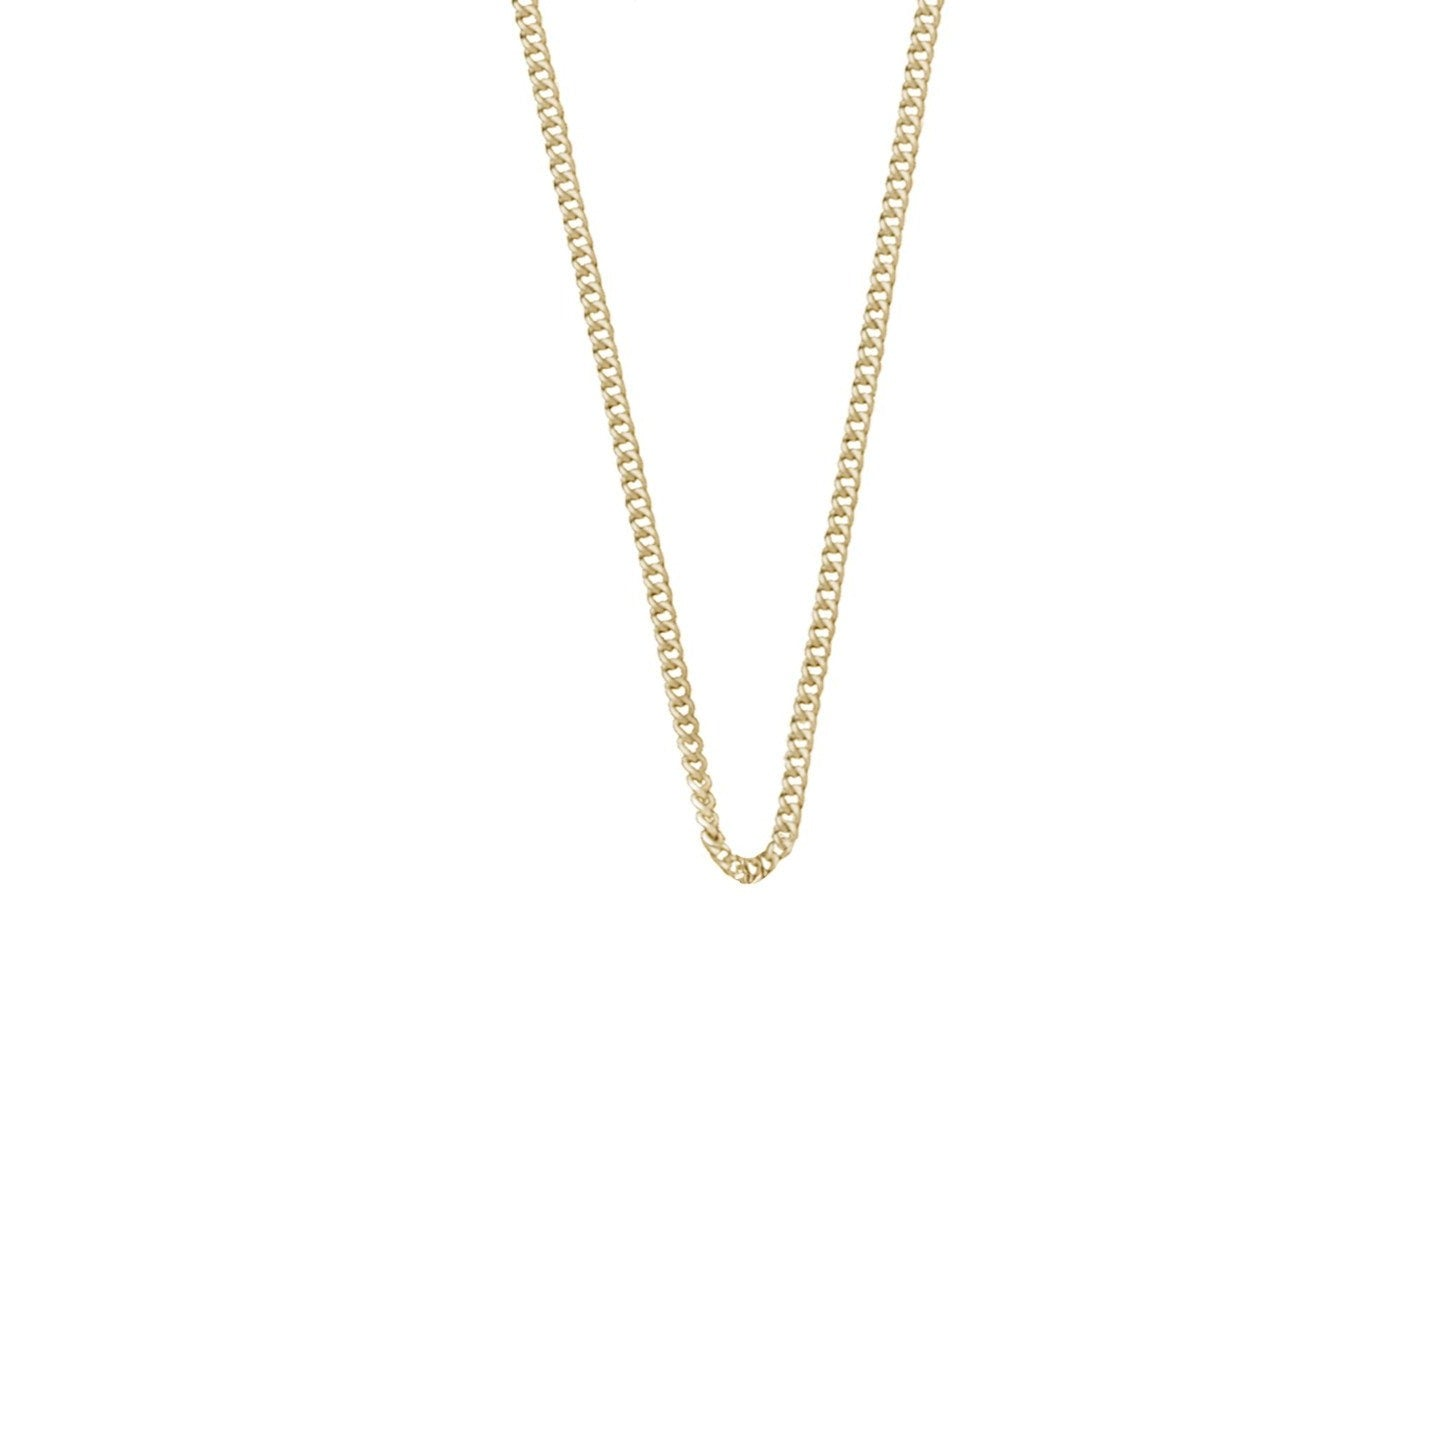 SOLID GOLD - SIMPLE FINE CHAIN - To Add Charms onto